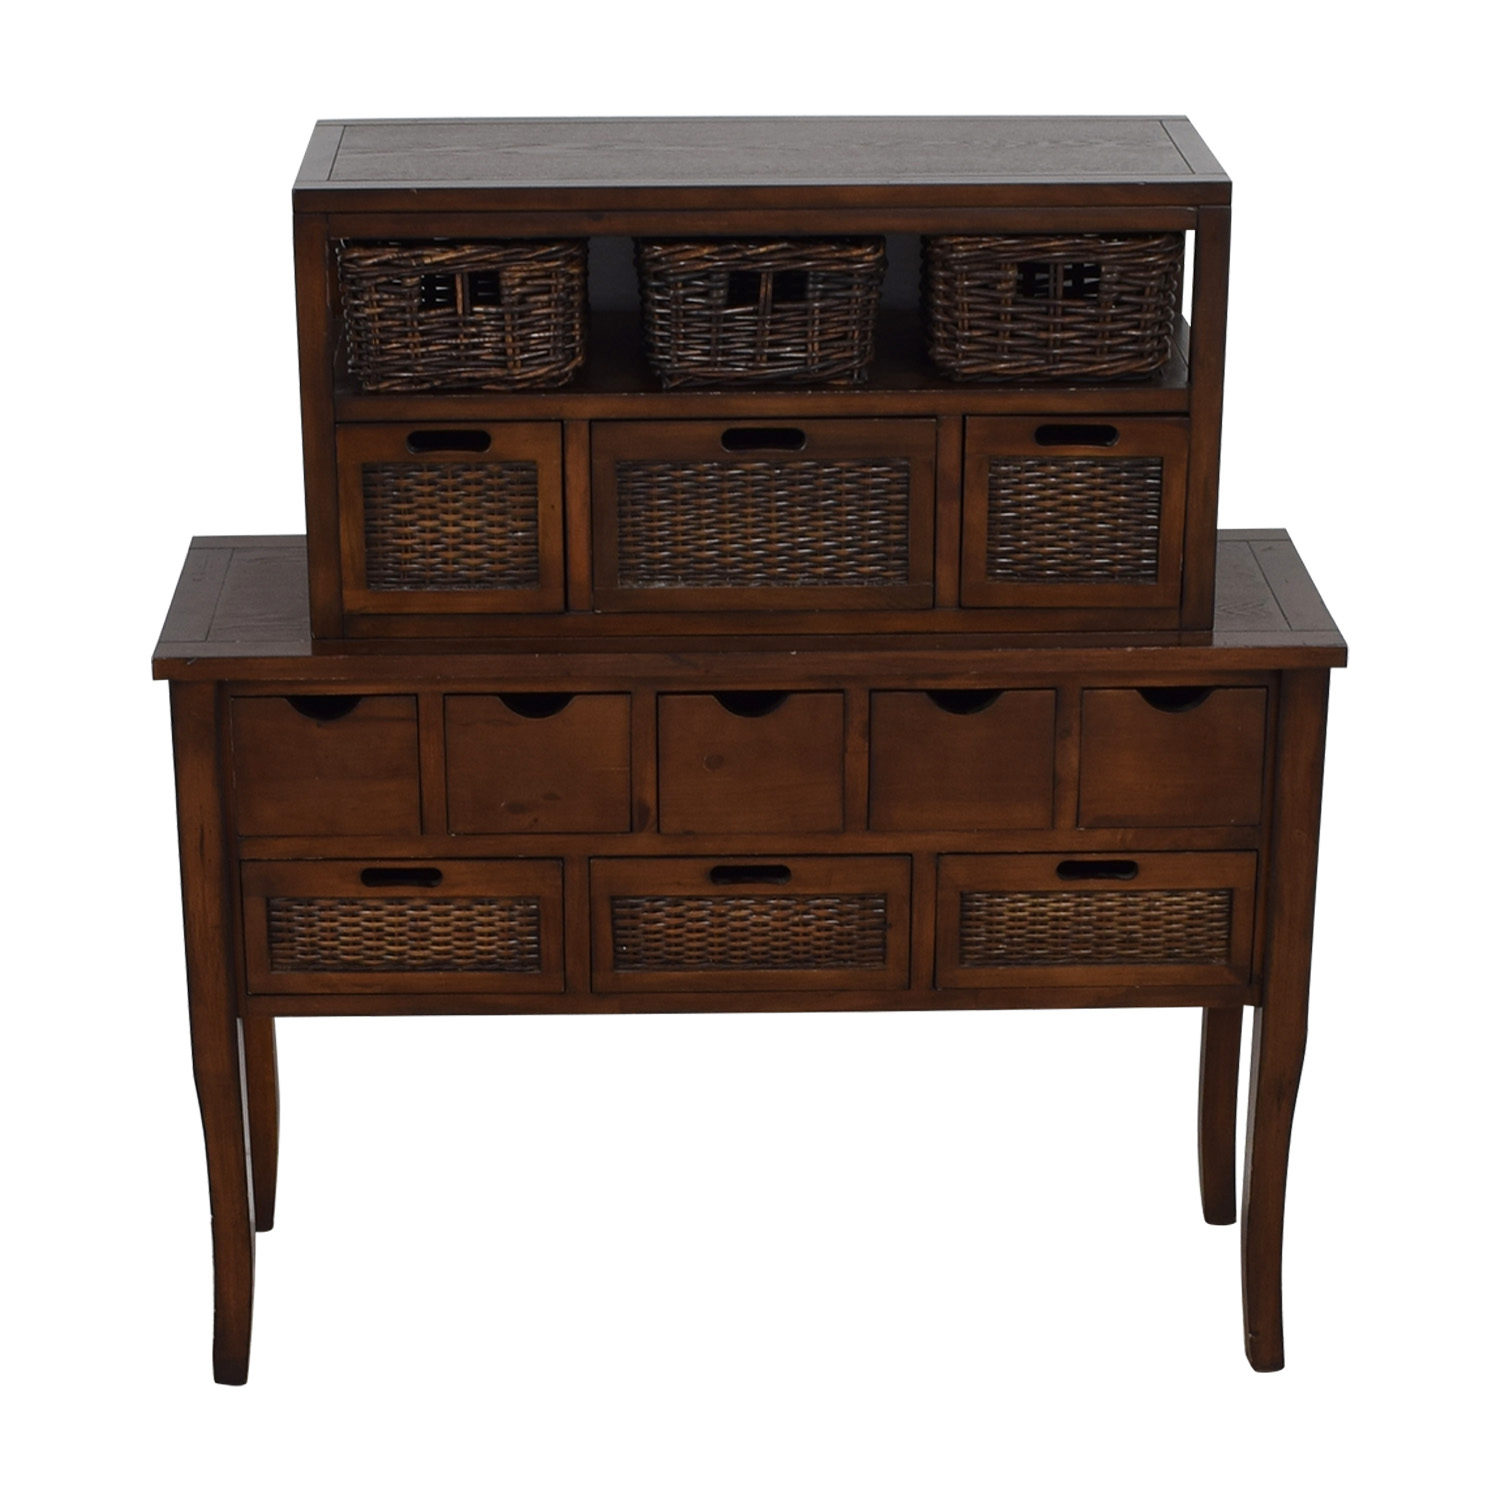 shop Pier 1 Imports Pier 1 Imports Logan Wicker Drawer Storage Console Table online